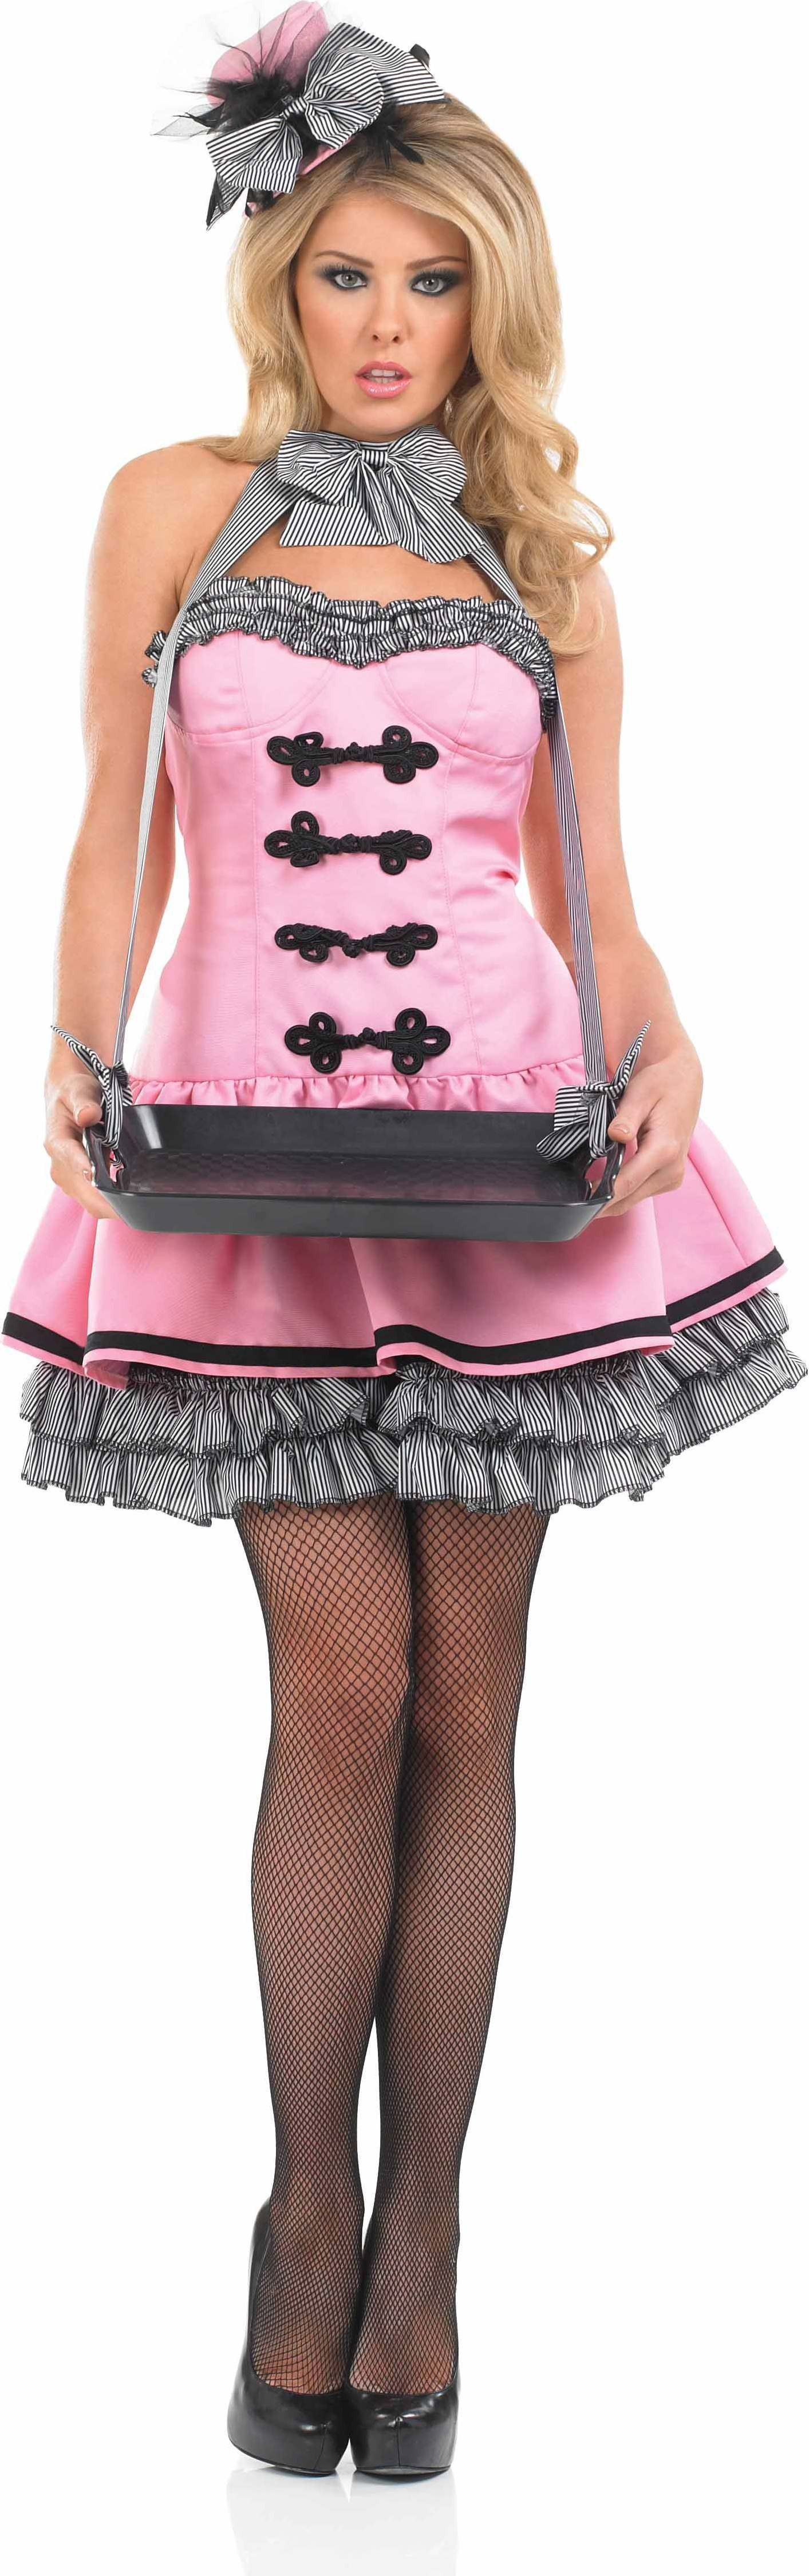 Ladies Usherette Girl Usherette Outfit - (Pink)